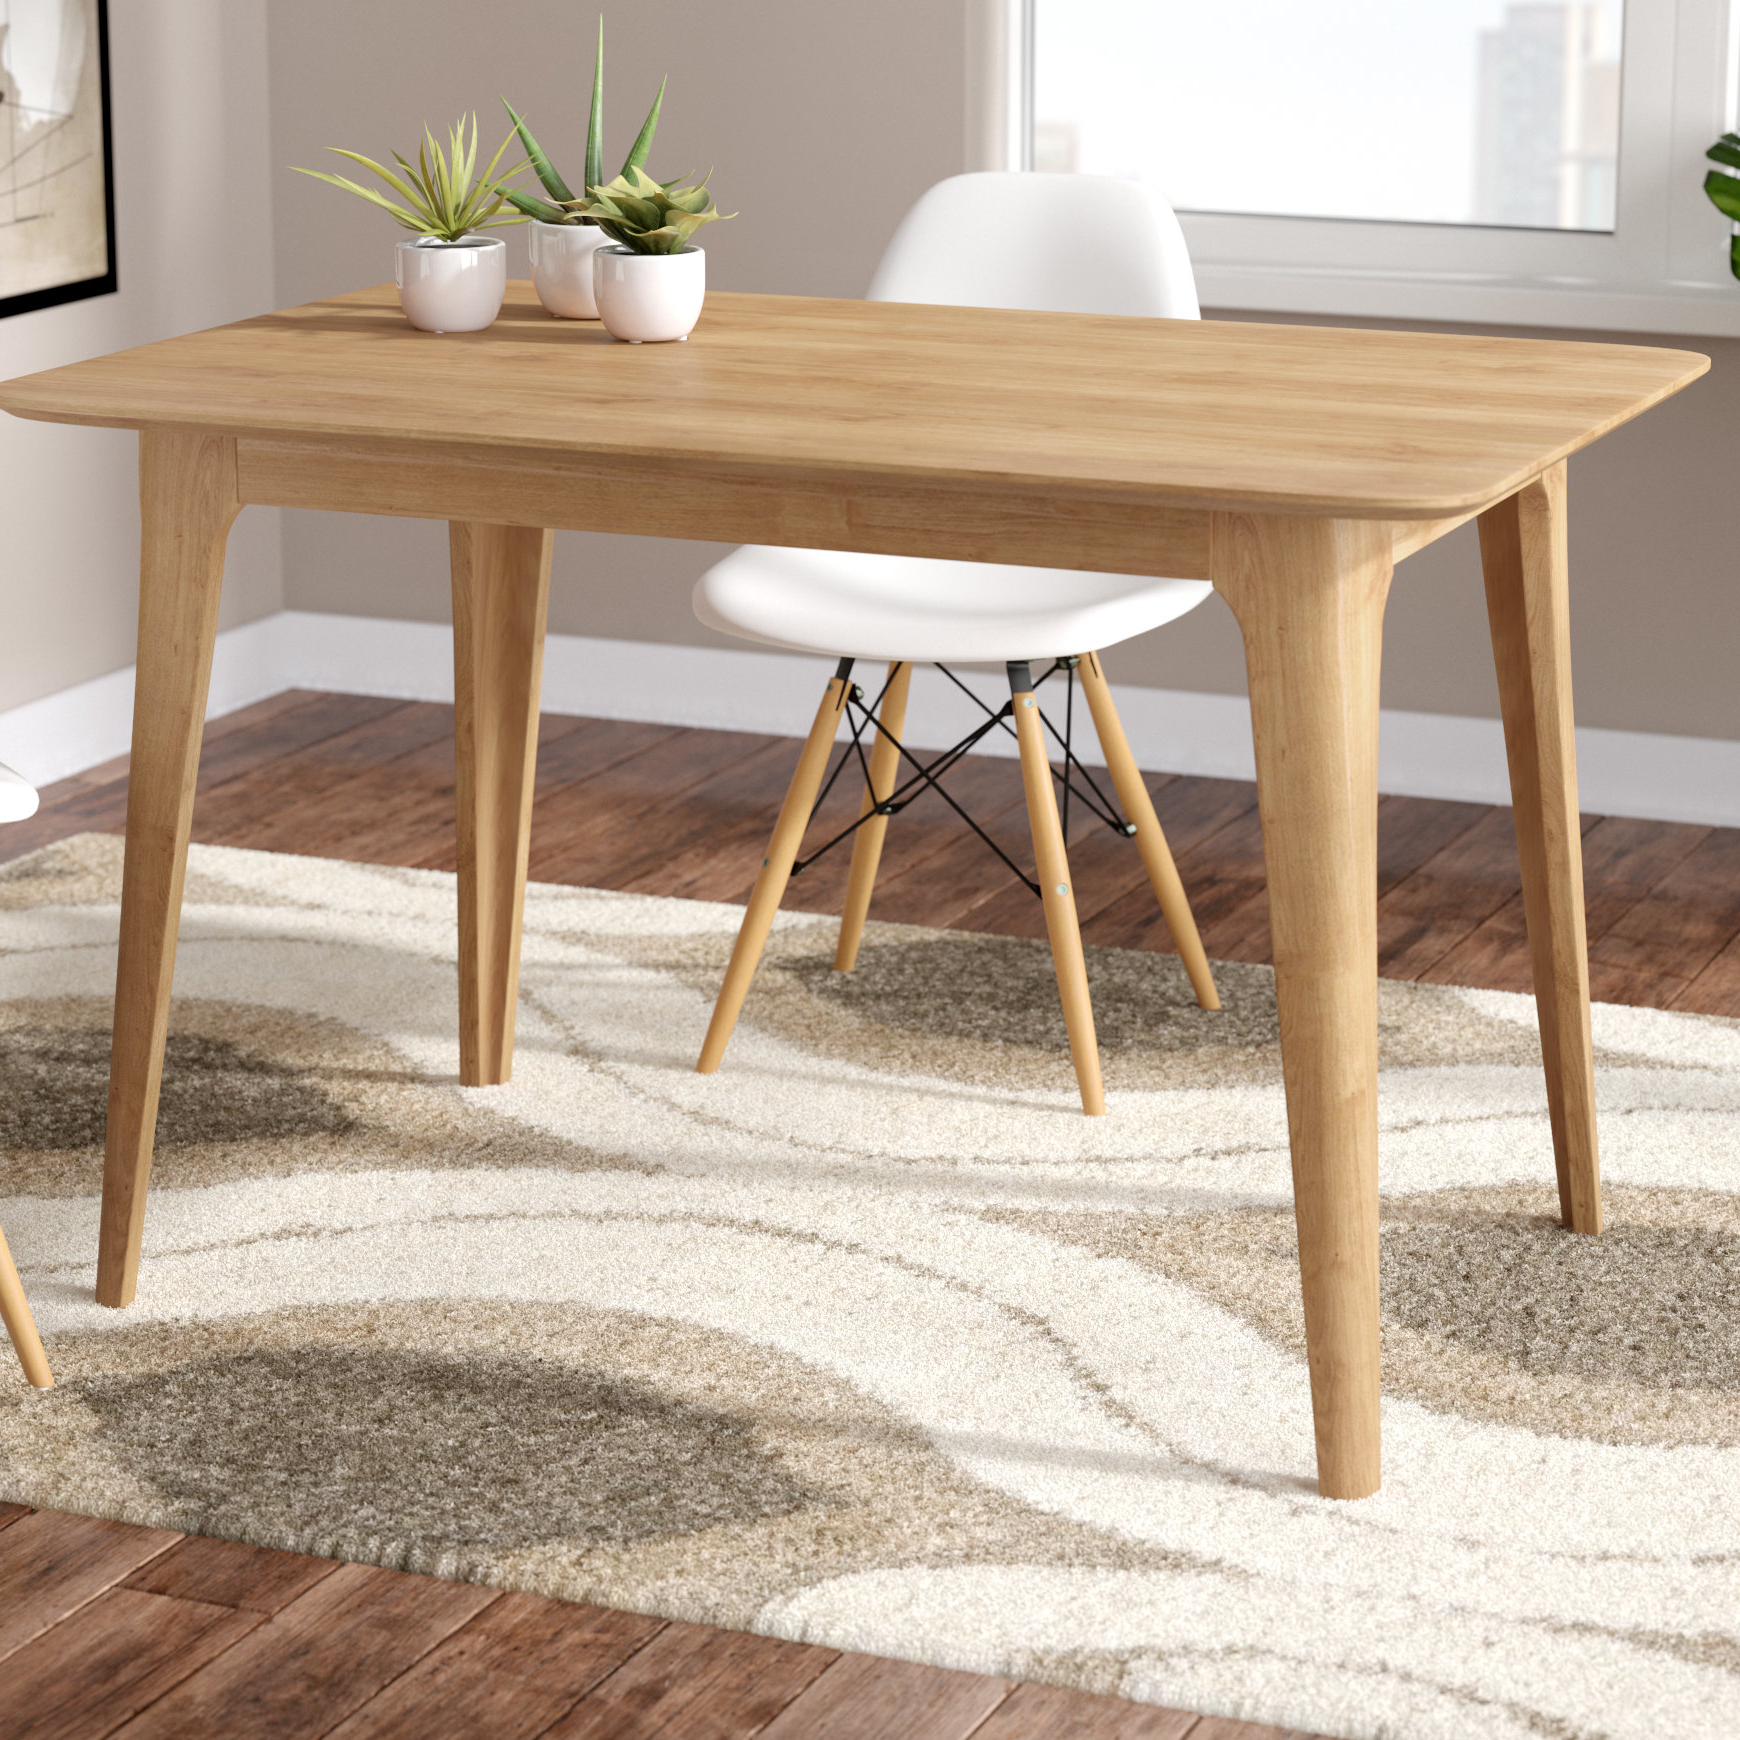 Wayfair Throughout Most Recent Amir 5 Piece Solid Wood Dining Sets (Set Of 5) (View 24 of 25)